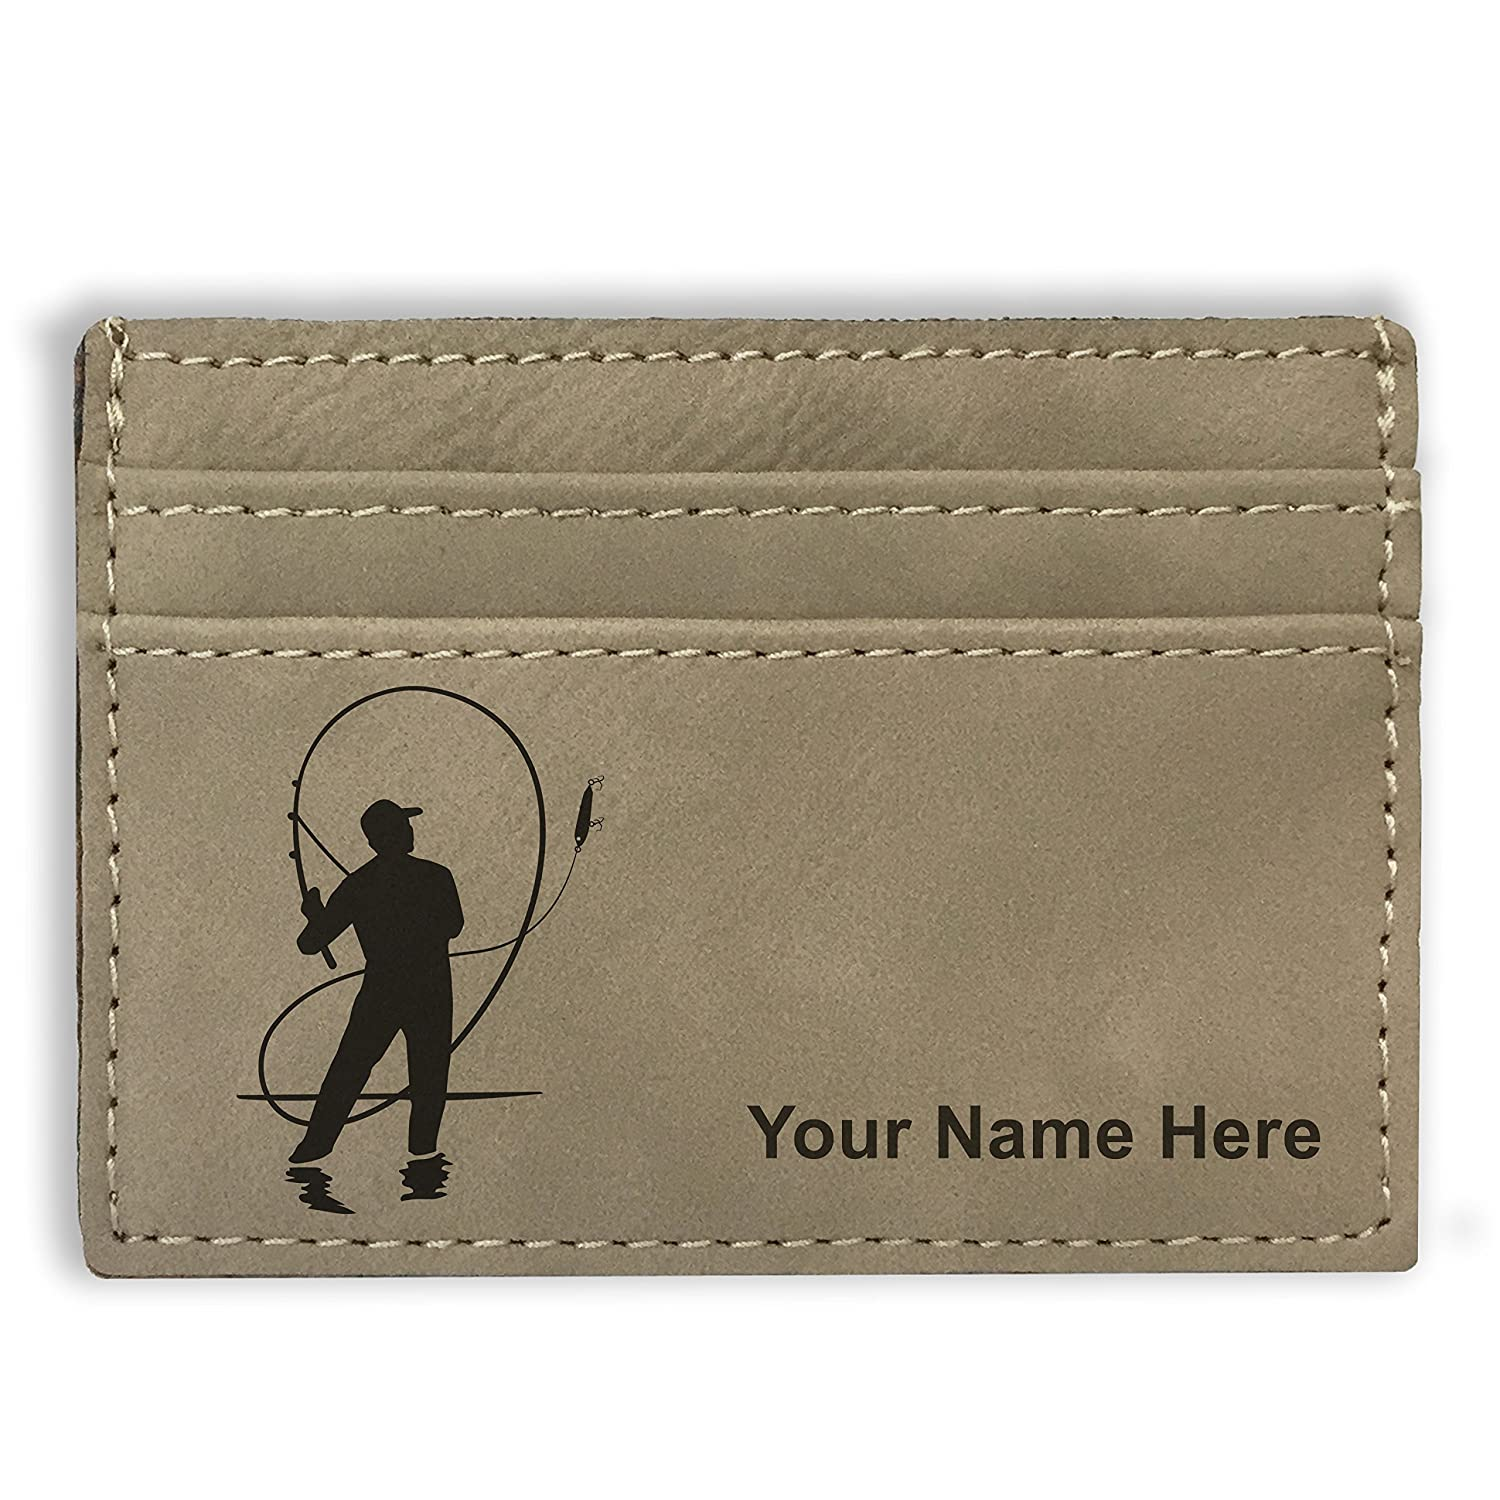 Money Clip Wallet Flag of Turkey Personalized Engraving Included